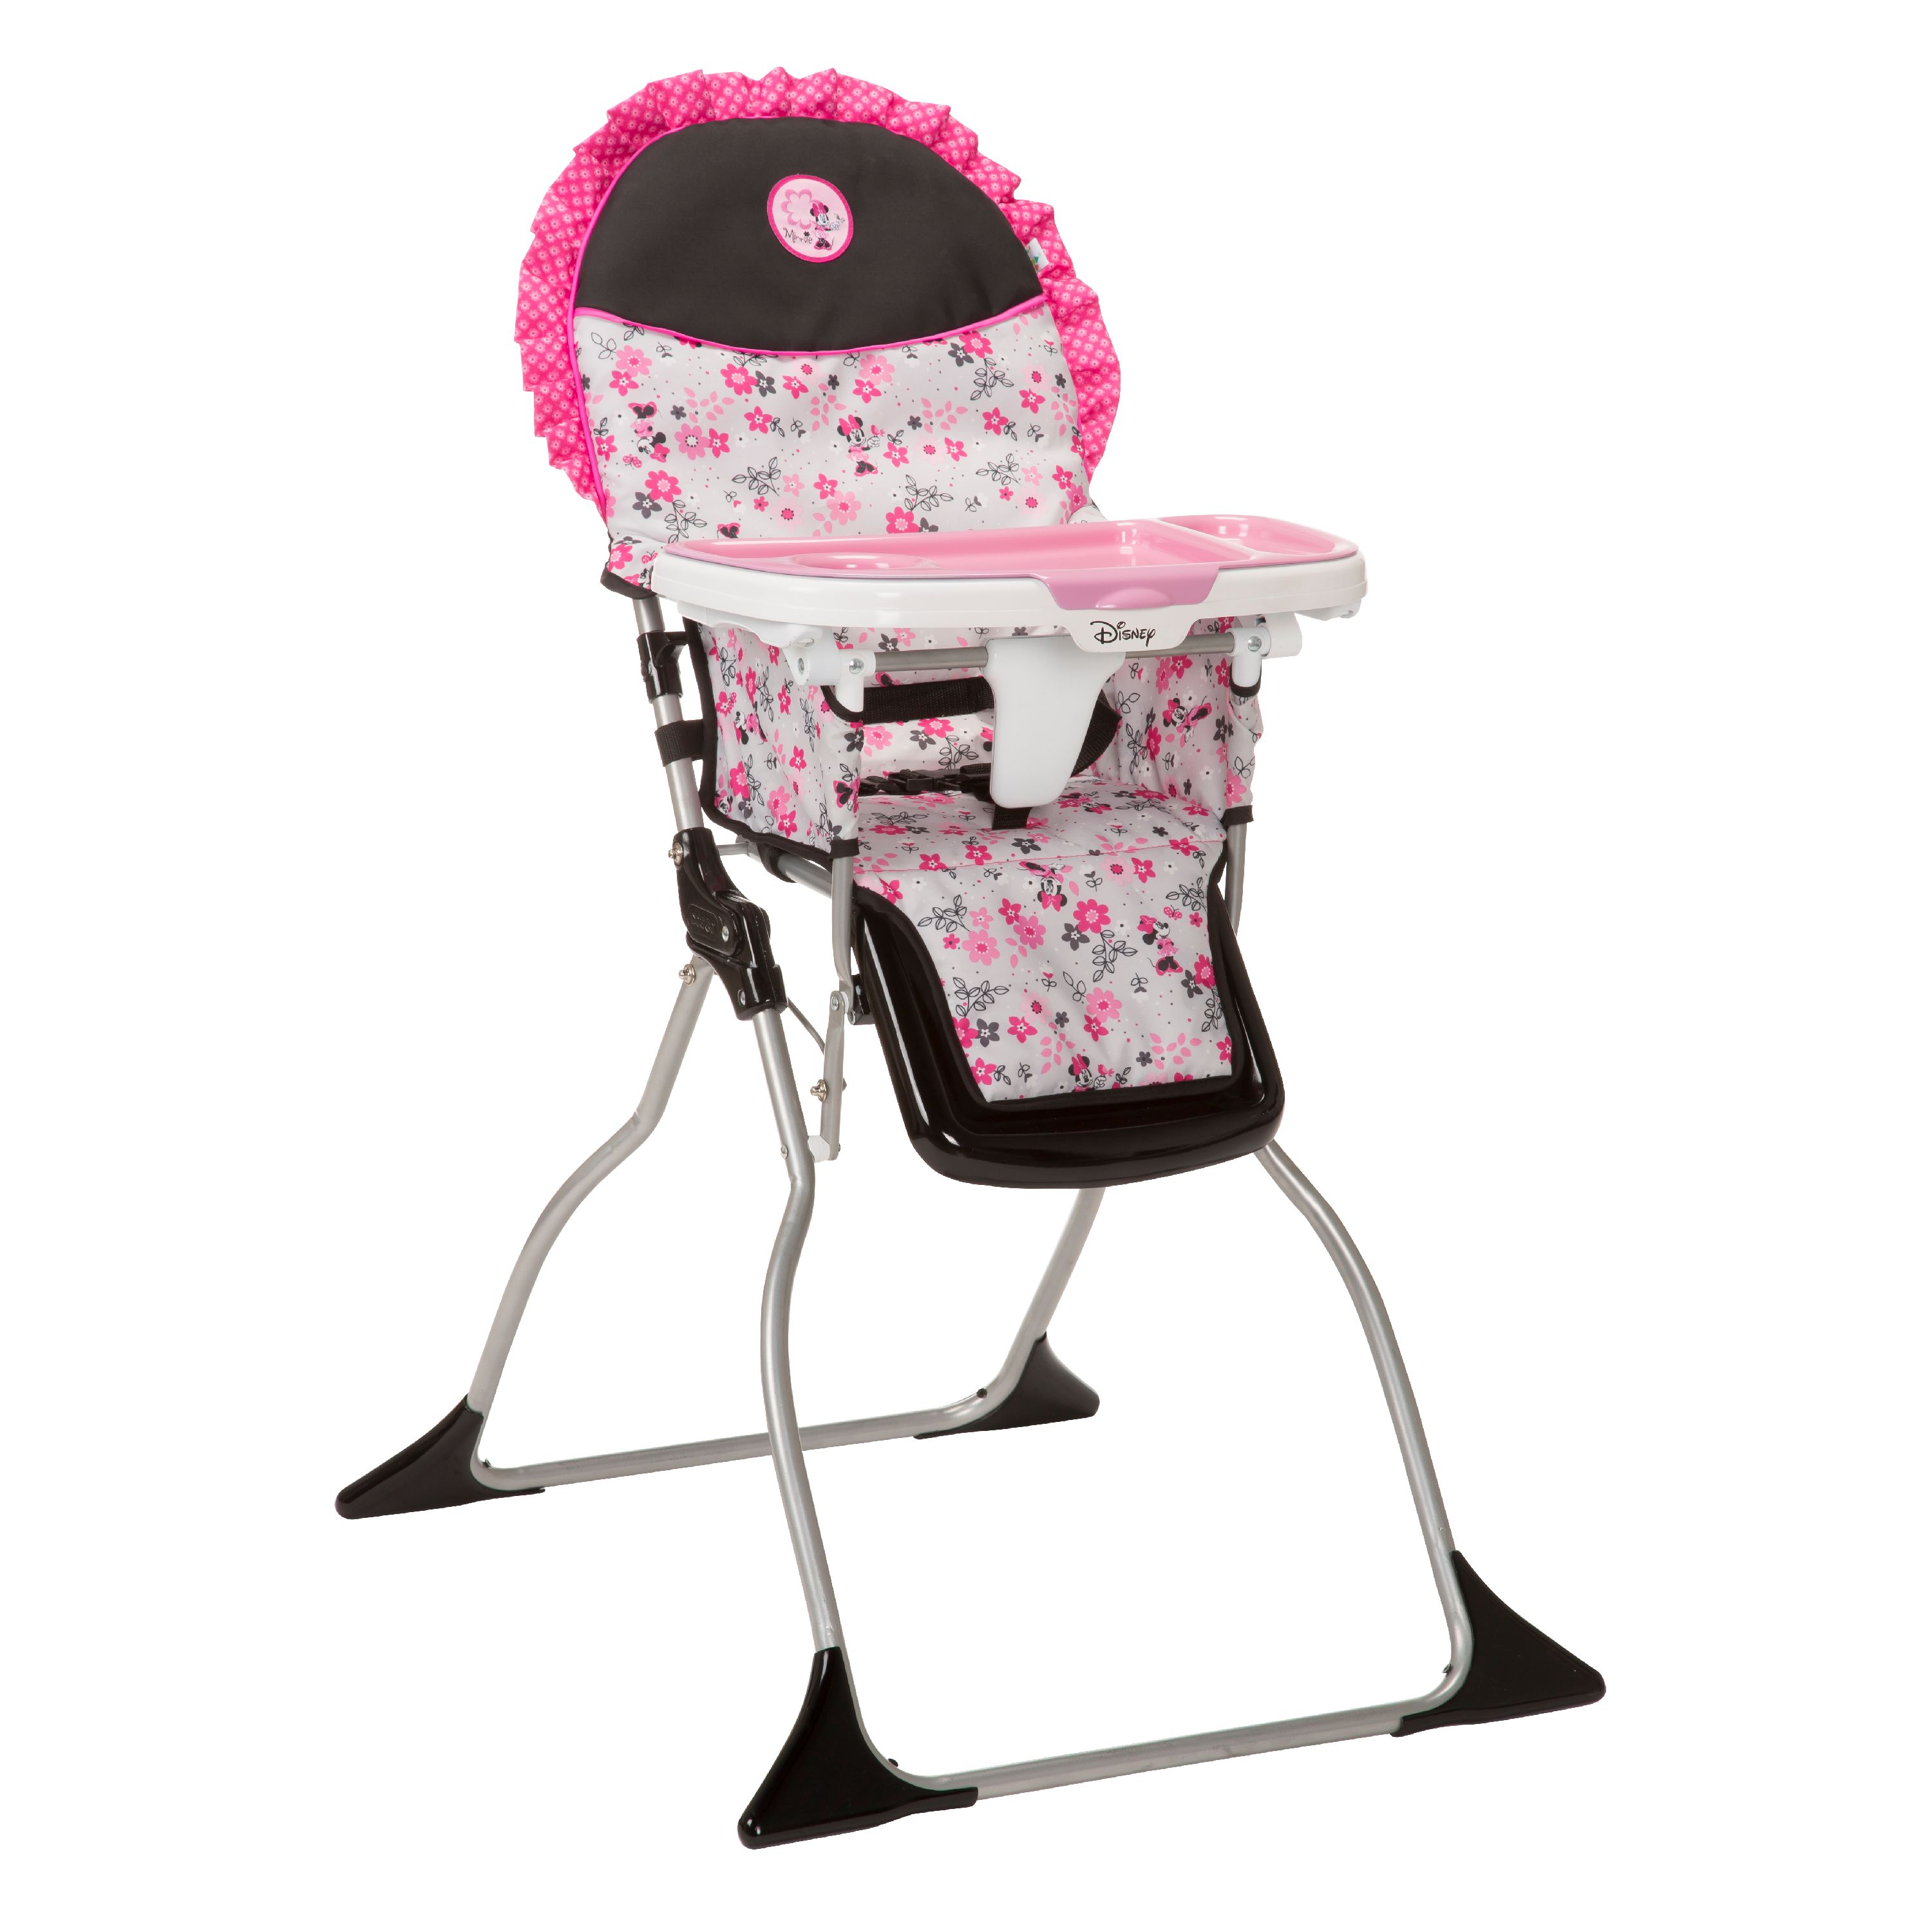 Disney Baby Simple Fold Plus High Chair, Minnie Garden Delight